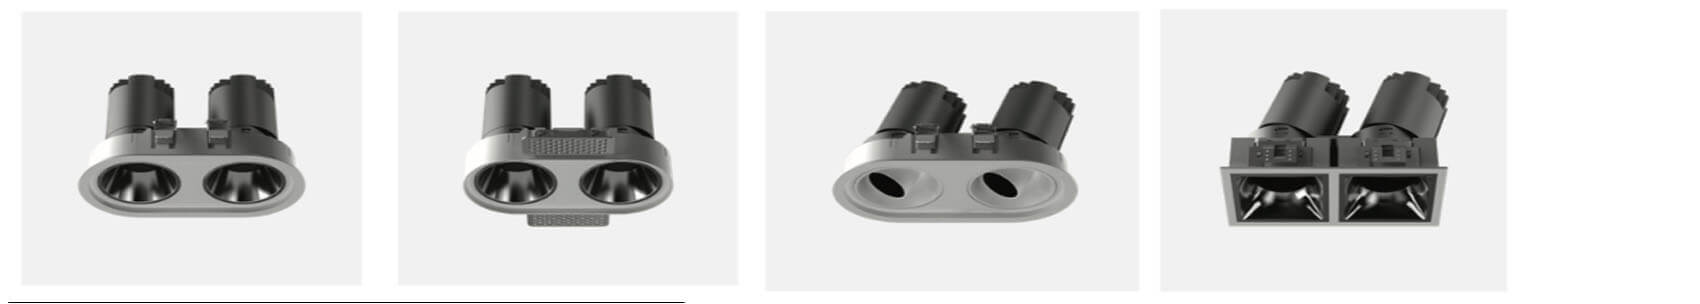 2X12 recessed led spotlights - Led Spotlight Recessed with 6 colors reflector